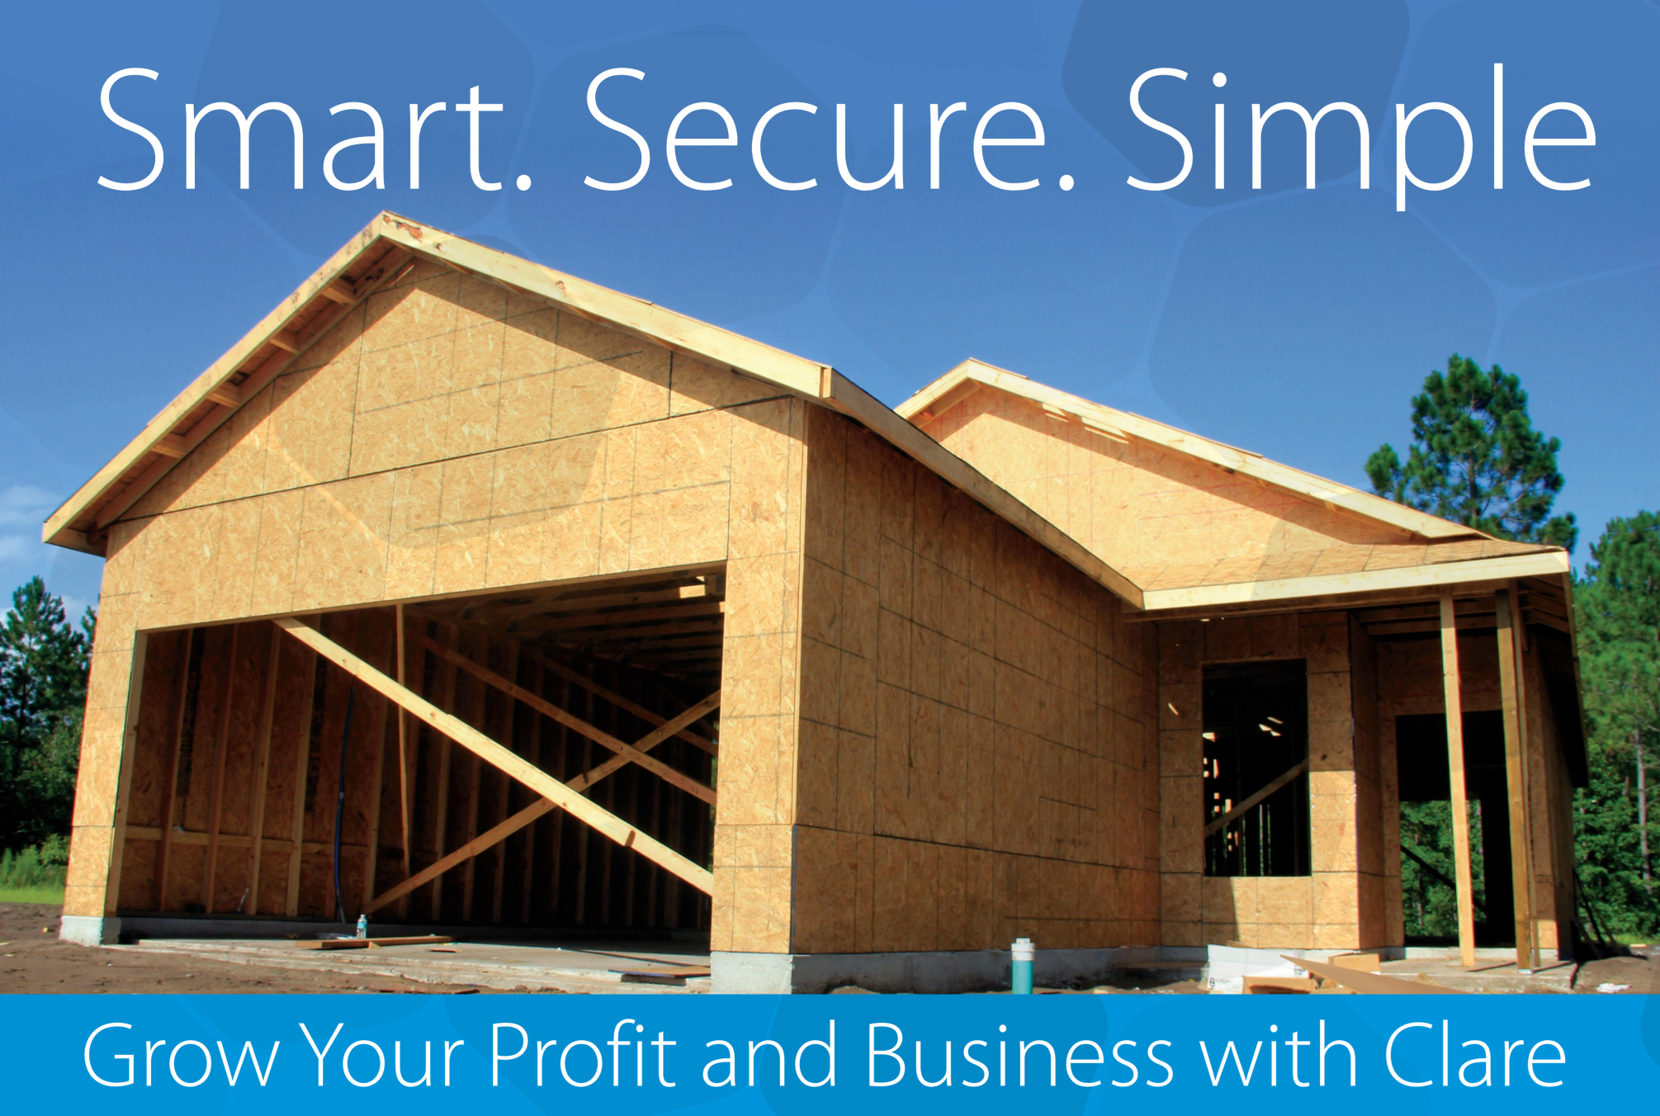 Clare Smart Home and Security Program for Builders